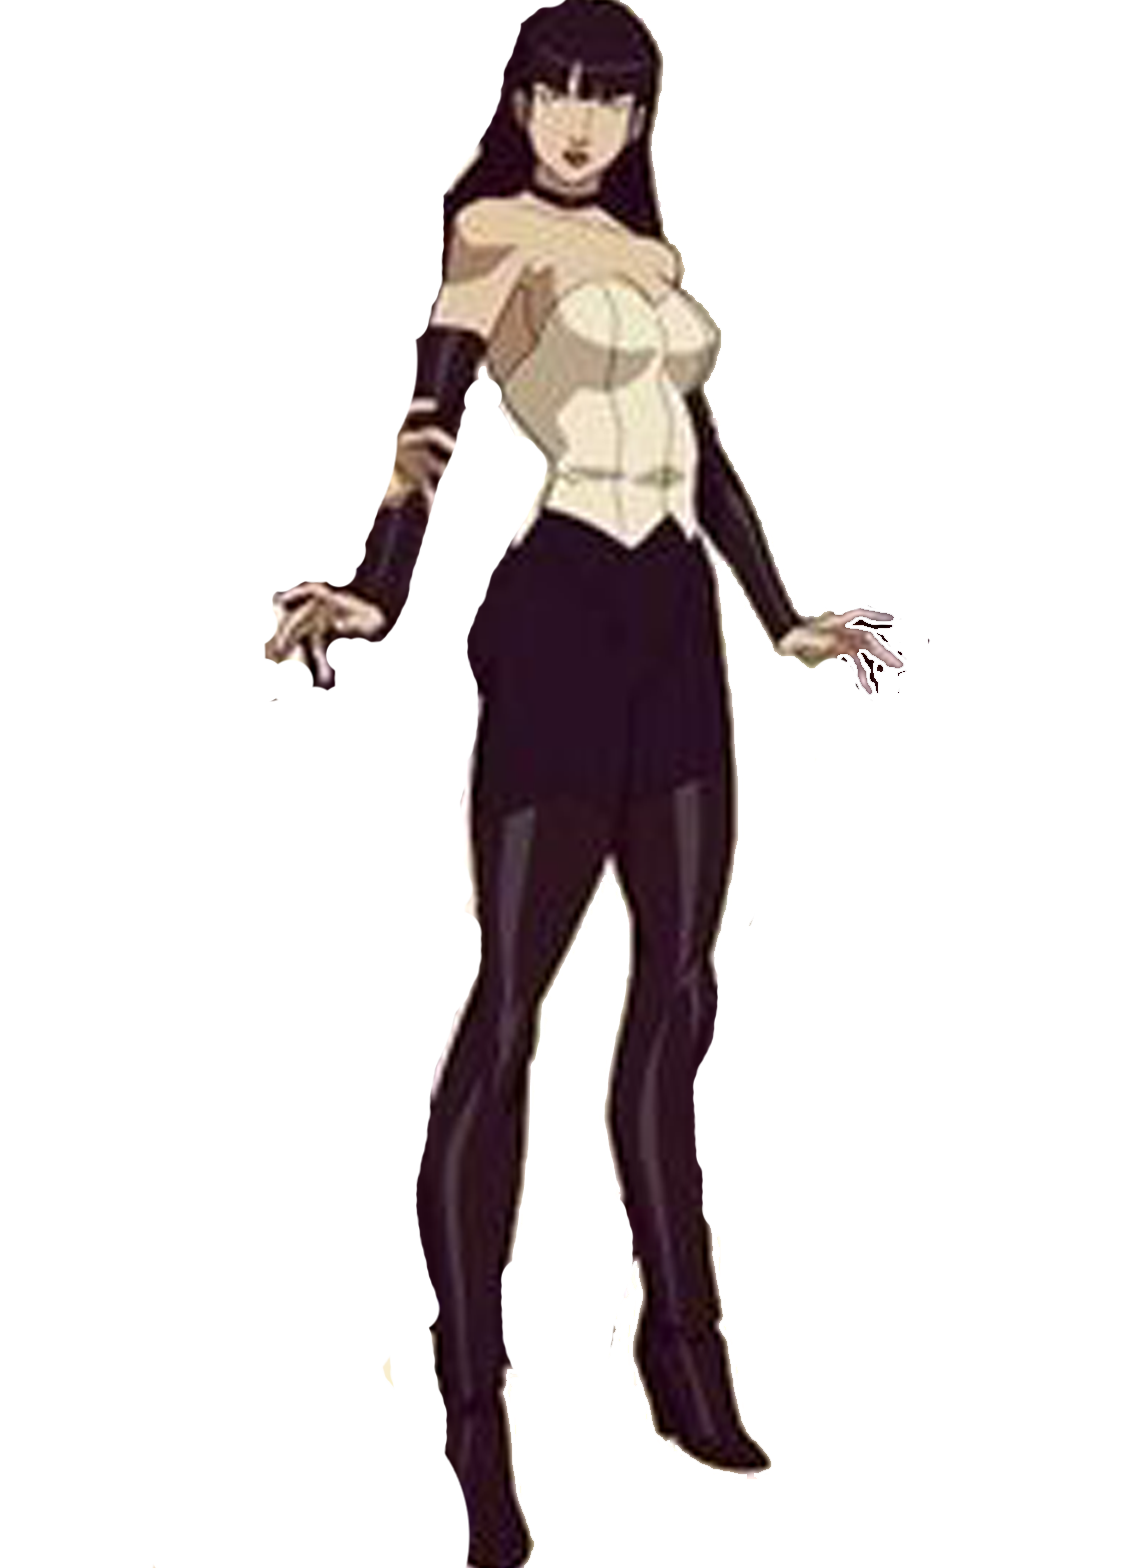 zatanna young justice toy - HD1140×1568